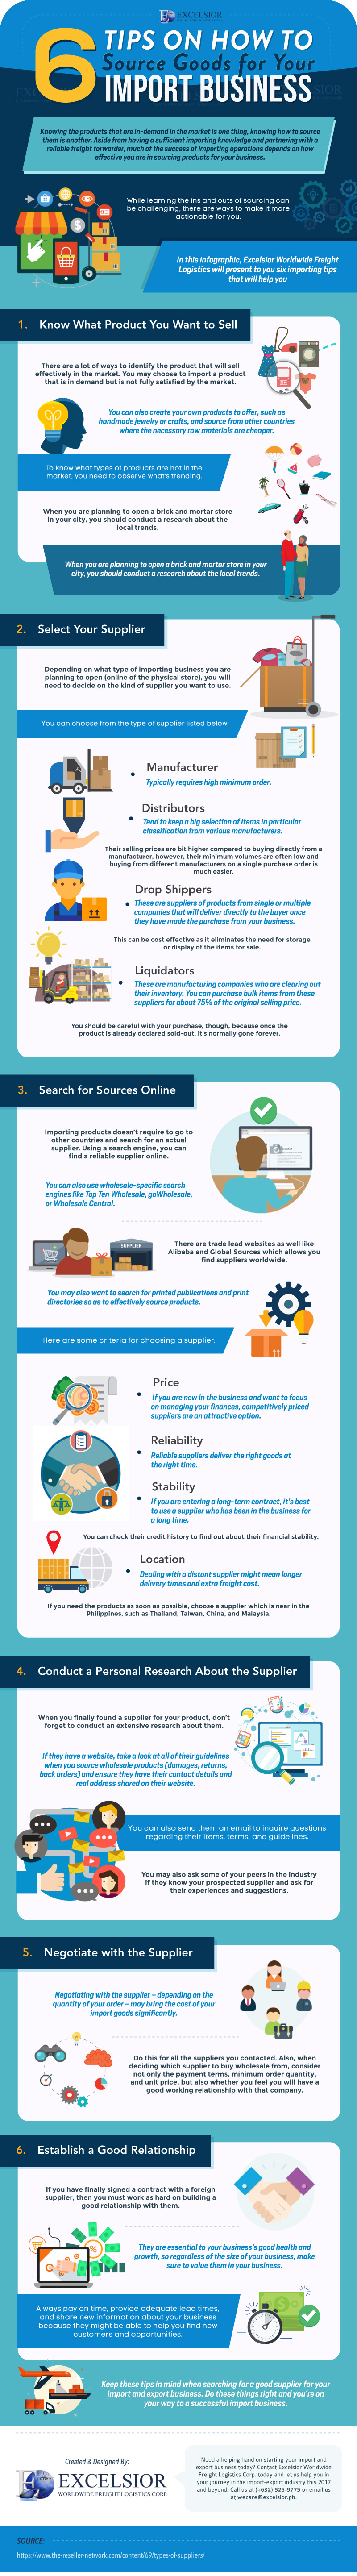 6 Tips On How To Source Goods For Your Import Business [Infographic]